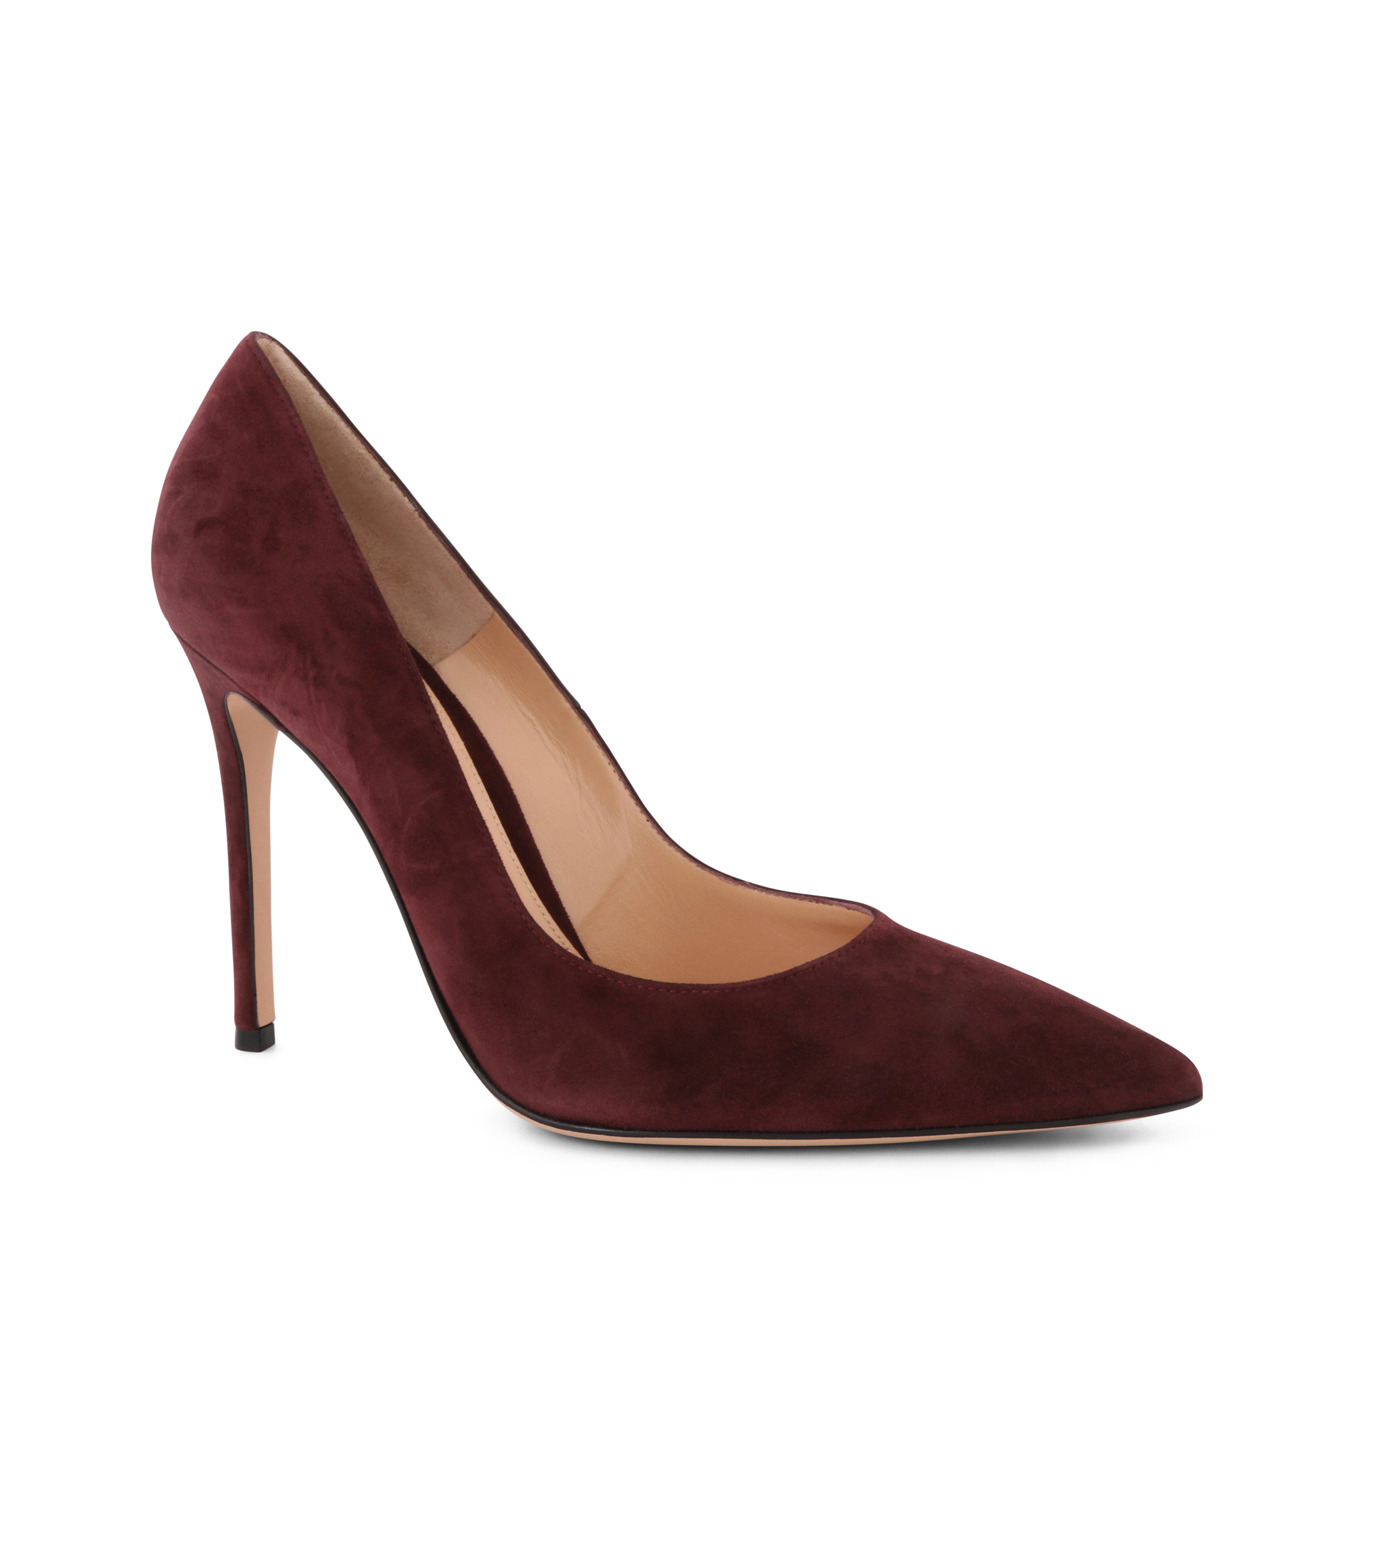 Gianvito Rossi(ジャンヴィト ロッシ)のSuede Pump-BORDEAUX(パンプス/pumps)-G28470-63 拡大詳細画像1